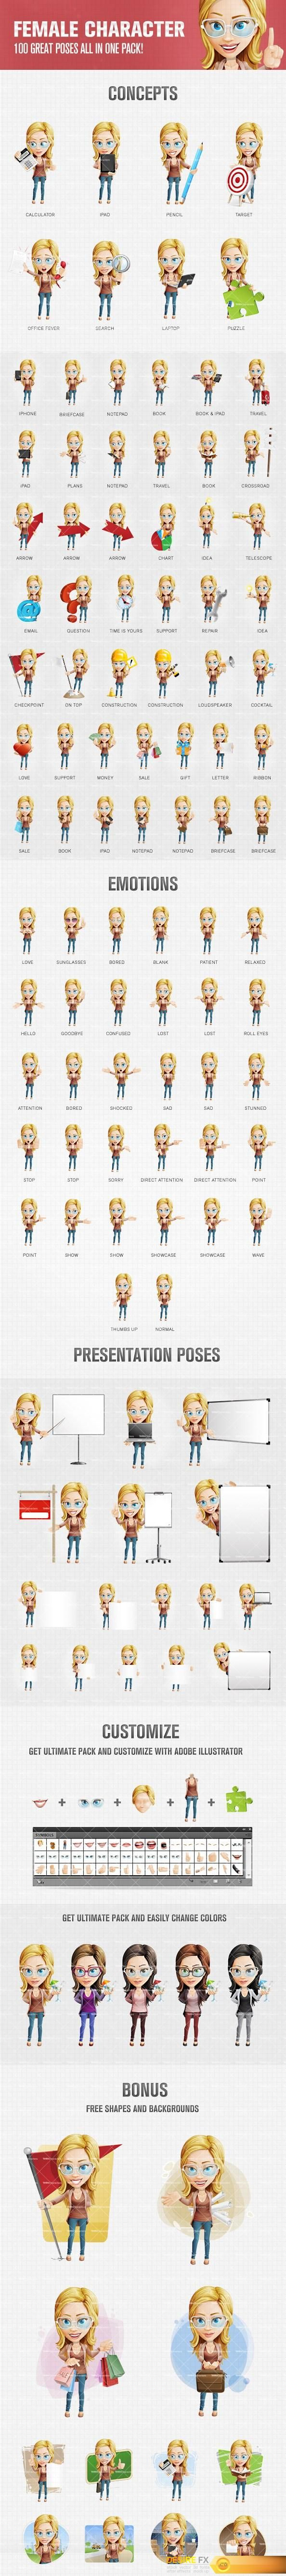 Female cartoon character that looks happy and excited. We have made a set of 100 poses that would fit perfectly to your creative projects.  #Ai #EPS #PSD #Vectors #3D #Toons #Character #Tooncharacters #Designs  http://www.desirefx.me/female-cartoon-character-with-glasses/